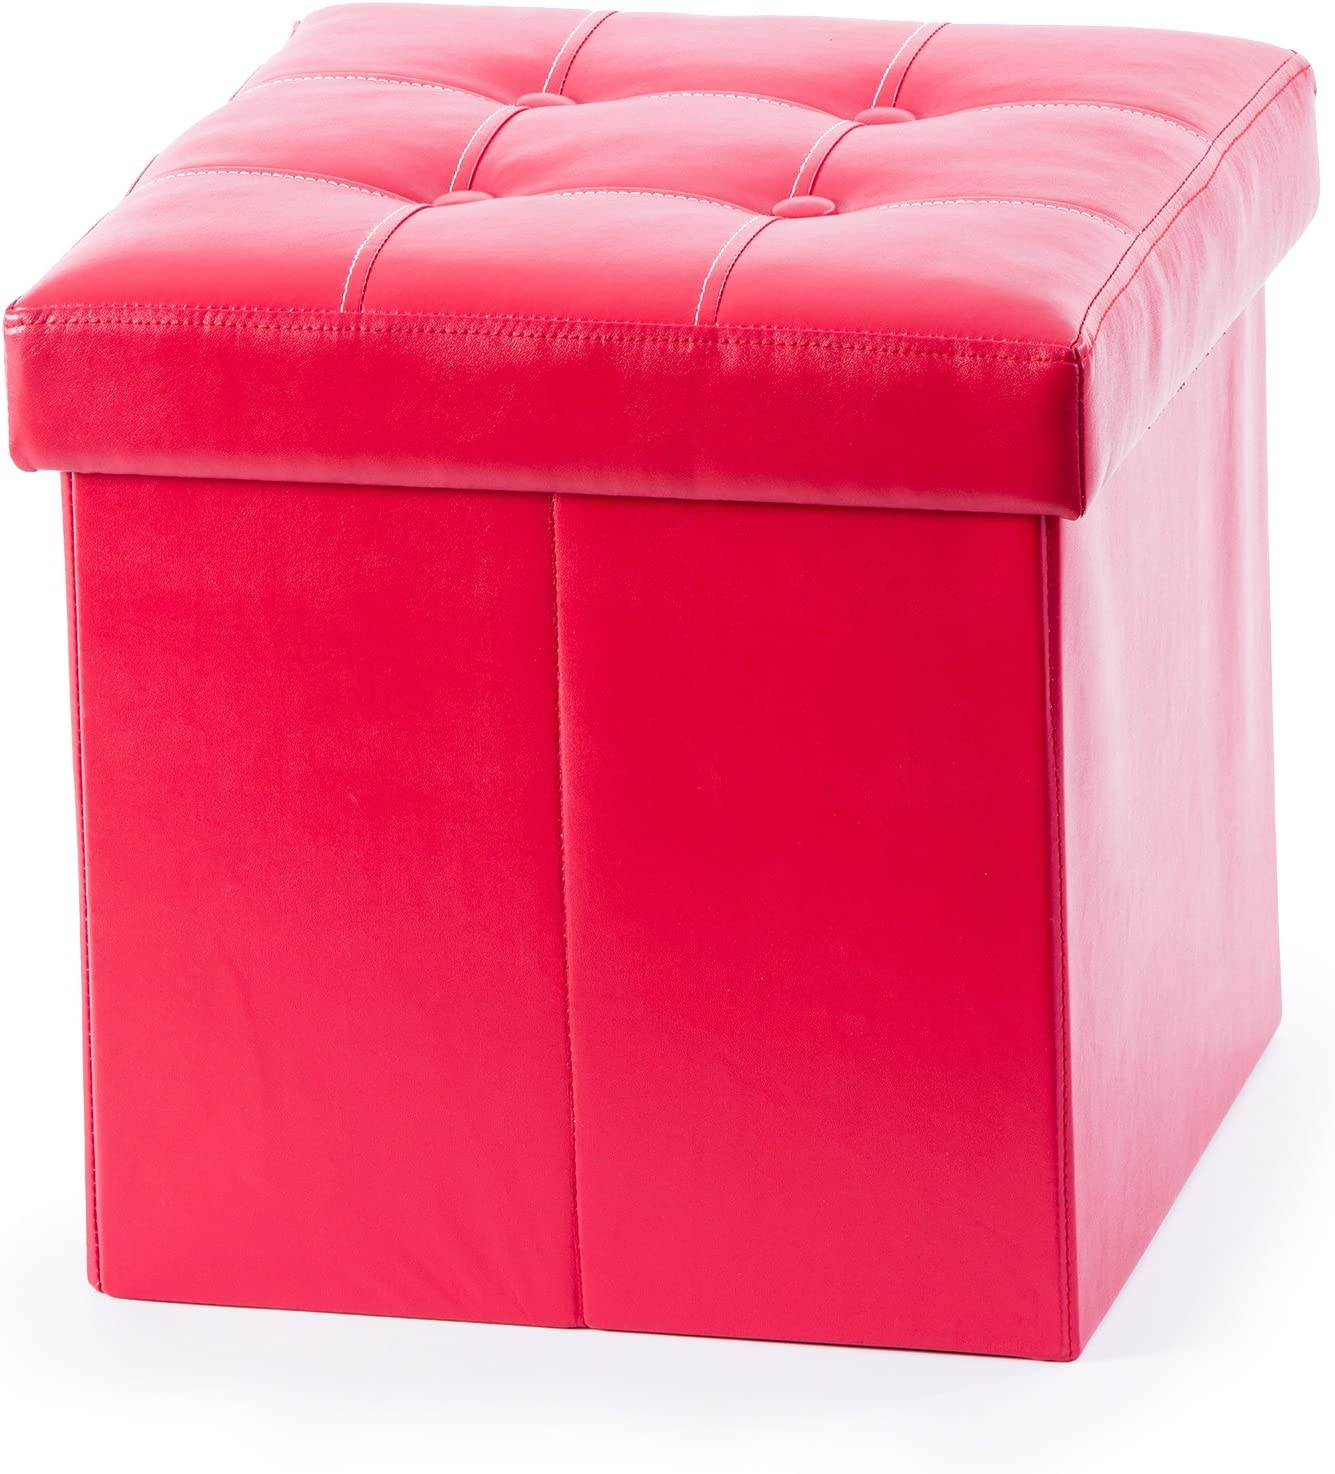 Guidecraft Kids Storage Ottoman - Red and Foot free Sale price wit Box Stool Toy